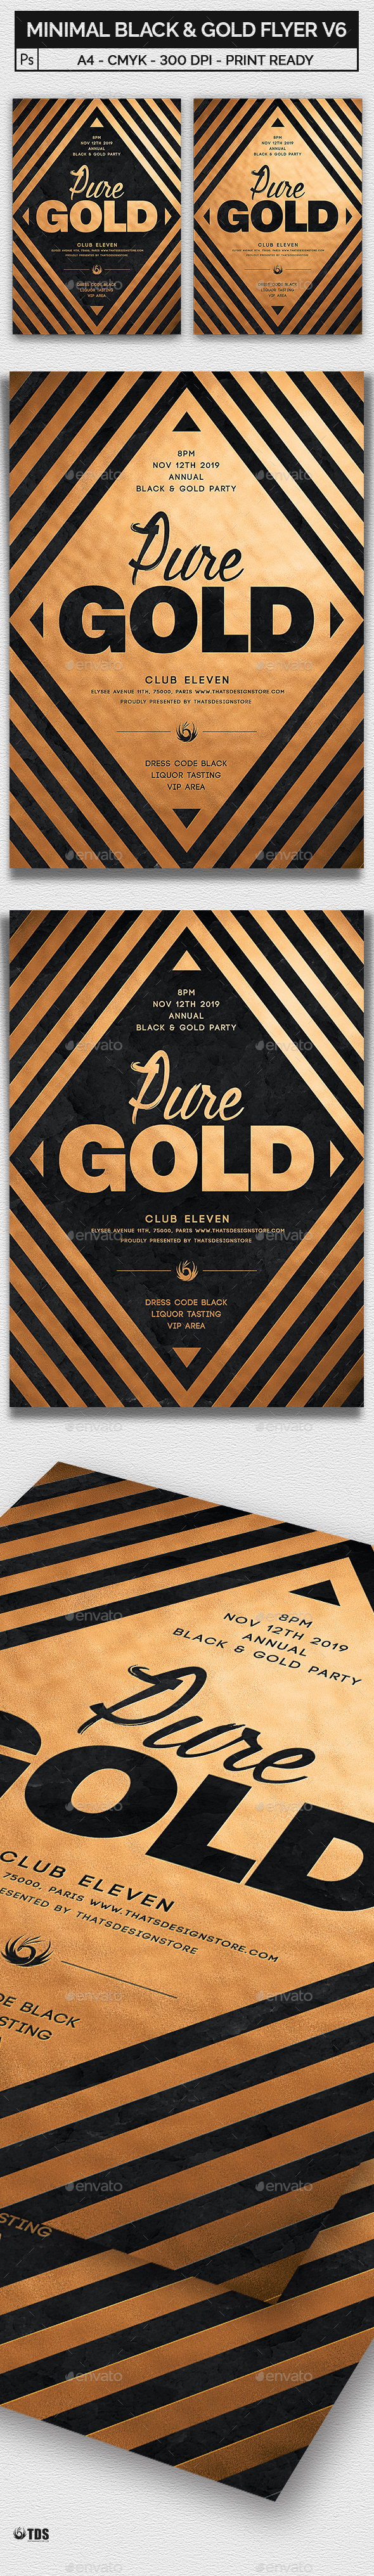 Minimal Black and Gold Flyer Template V6 - Clubs & Parties Events